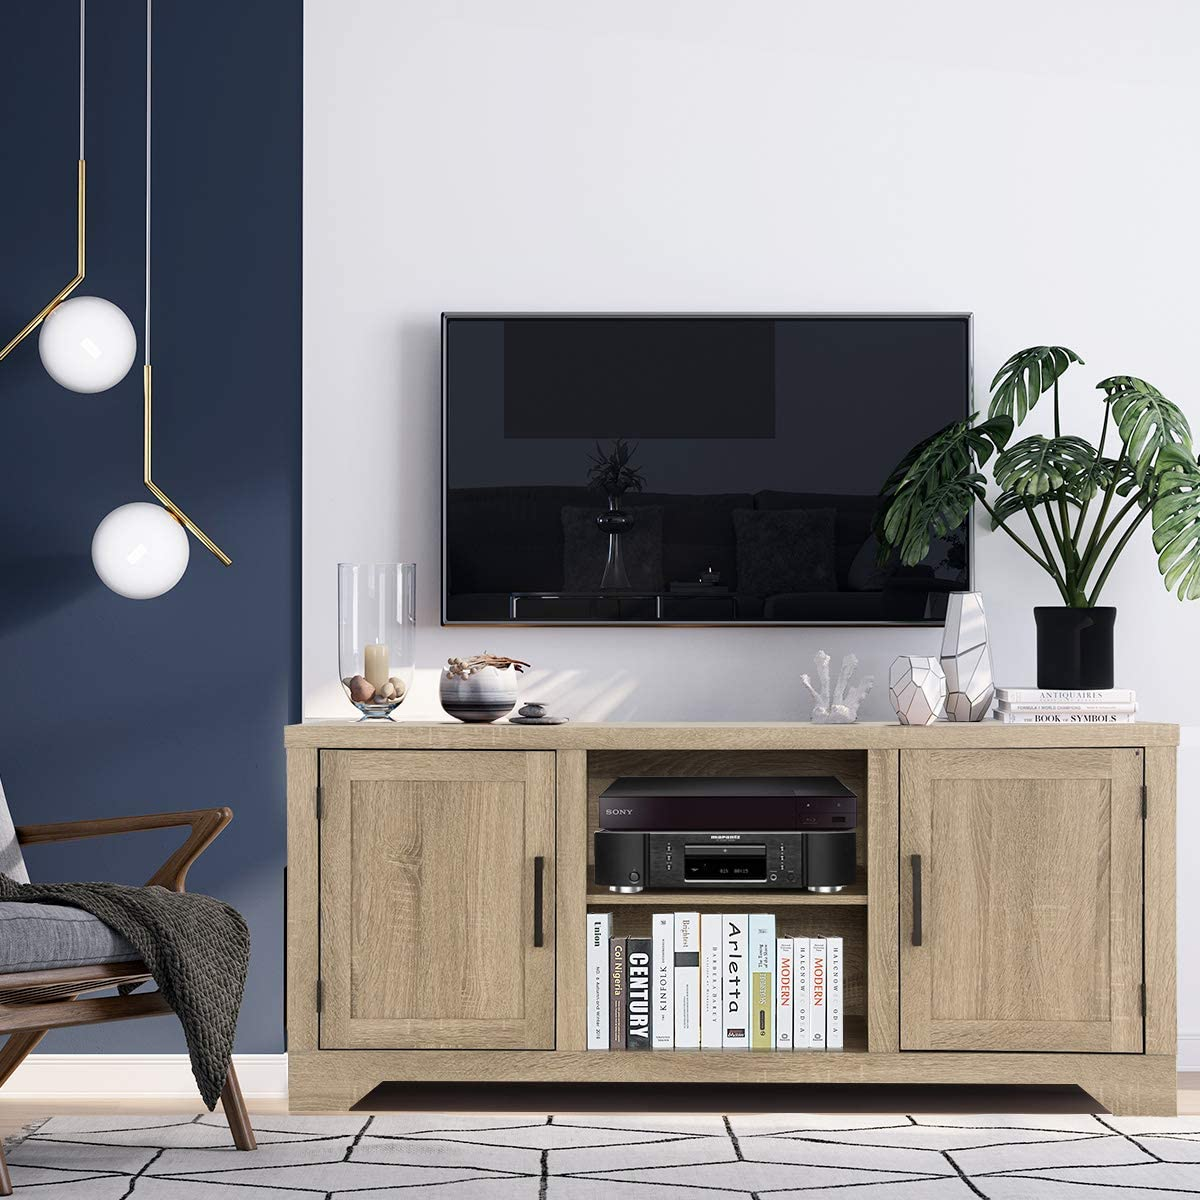 Tangkula Farmhouse Barn Wood TV Stand for TVs up to 65 Inches, Universal TV Storage Cabinet with Doors and Shelves, Ideal for Home Living Room, Natural Design